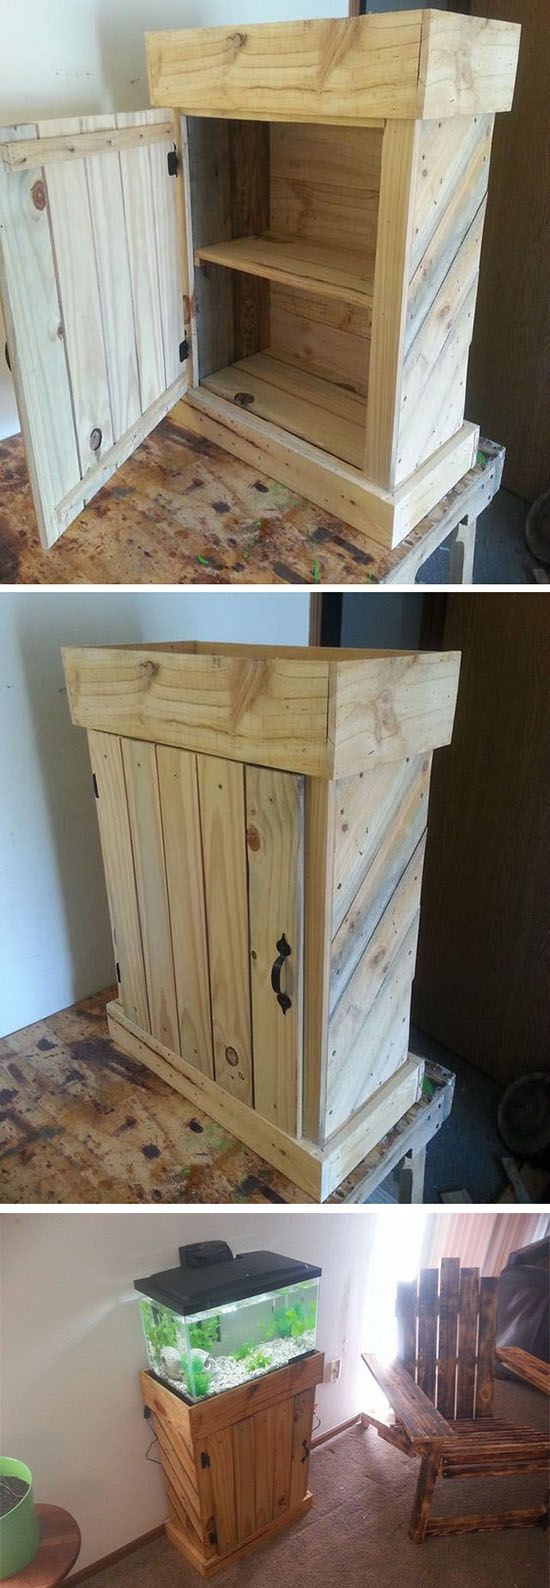 Pallet storage cabinets ideas